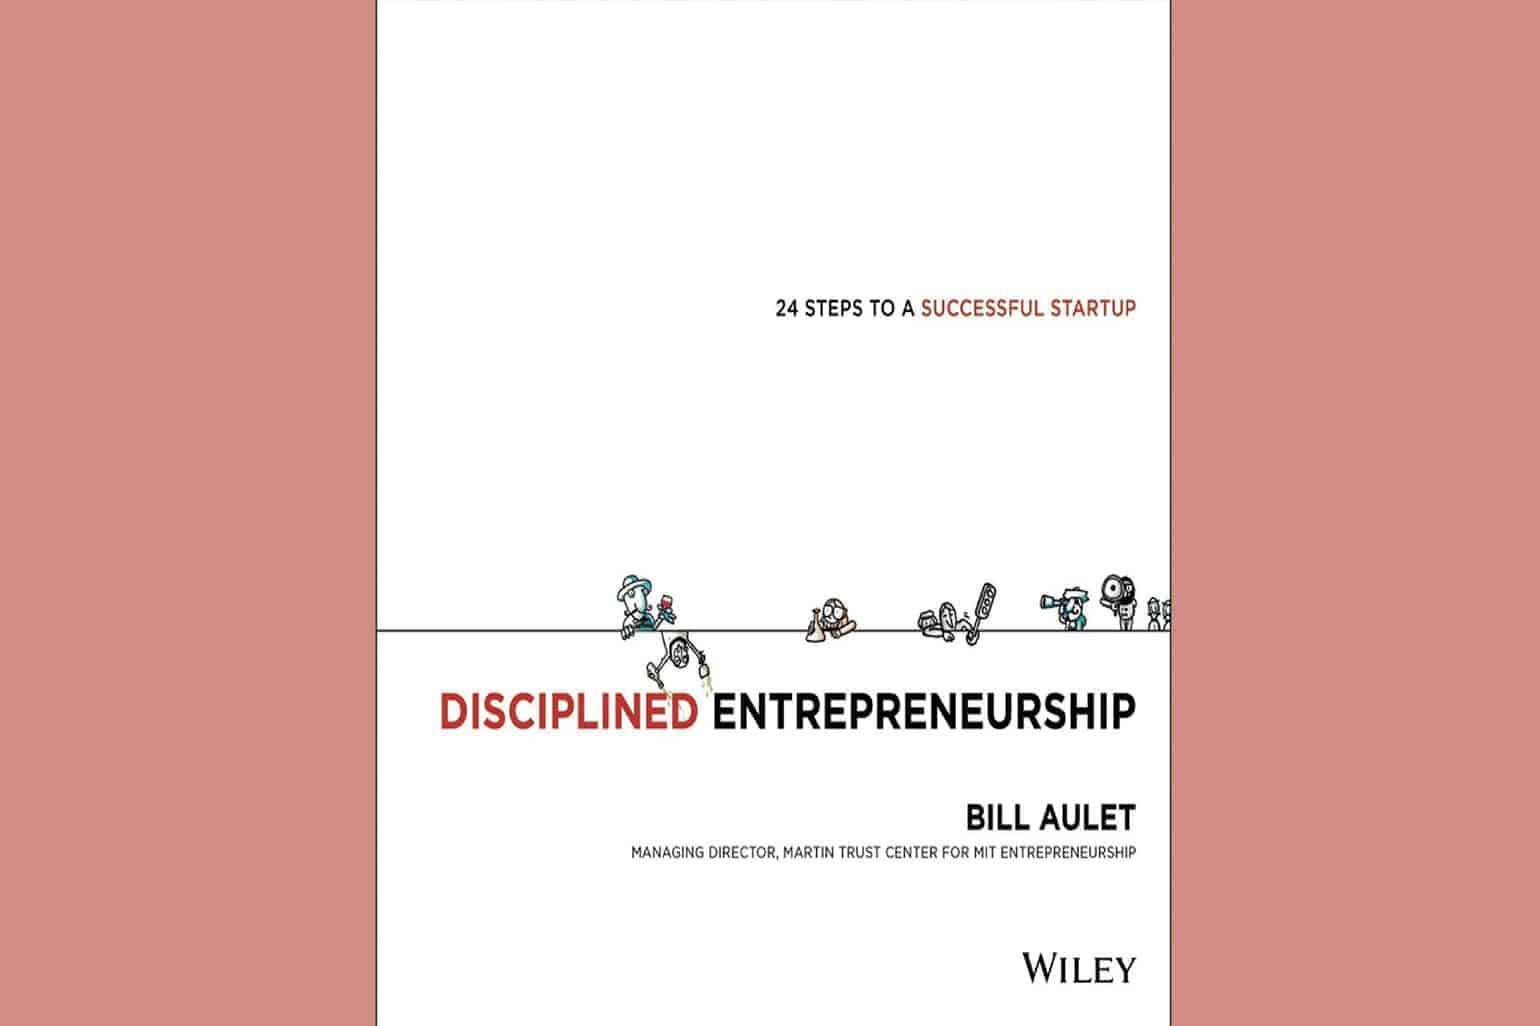 Disciplined Entrepreneurship 24 Steps To A Successful Startup By Bill Aulet